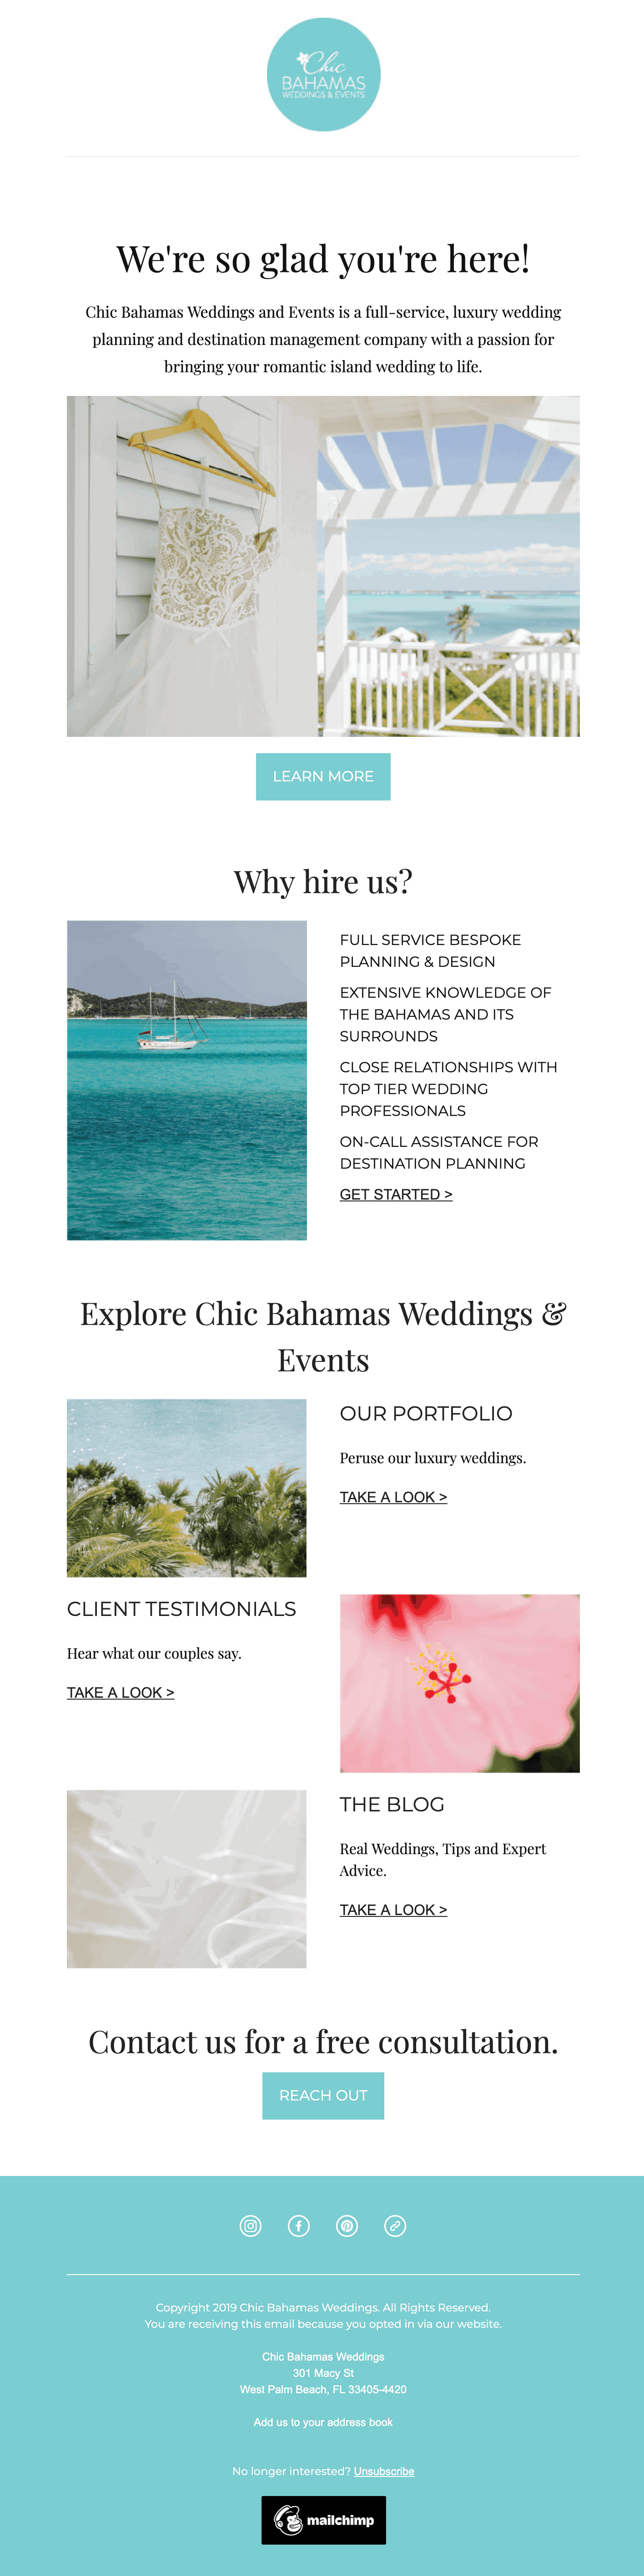 Chic Bahamas Weddings welcome email